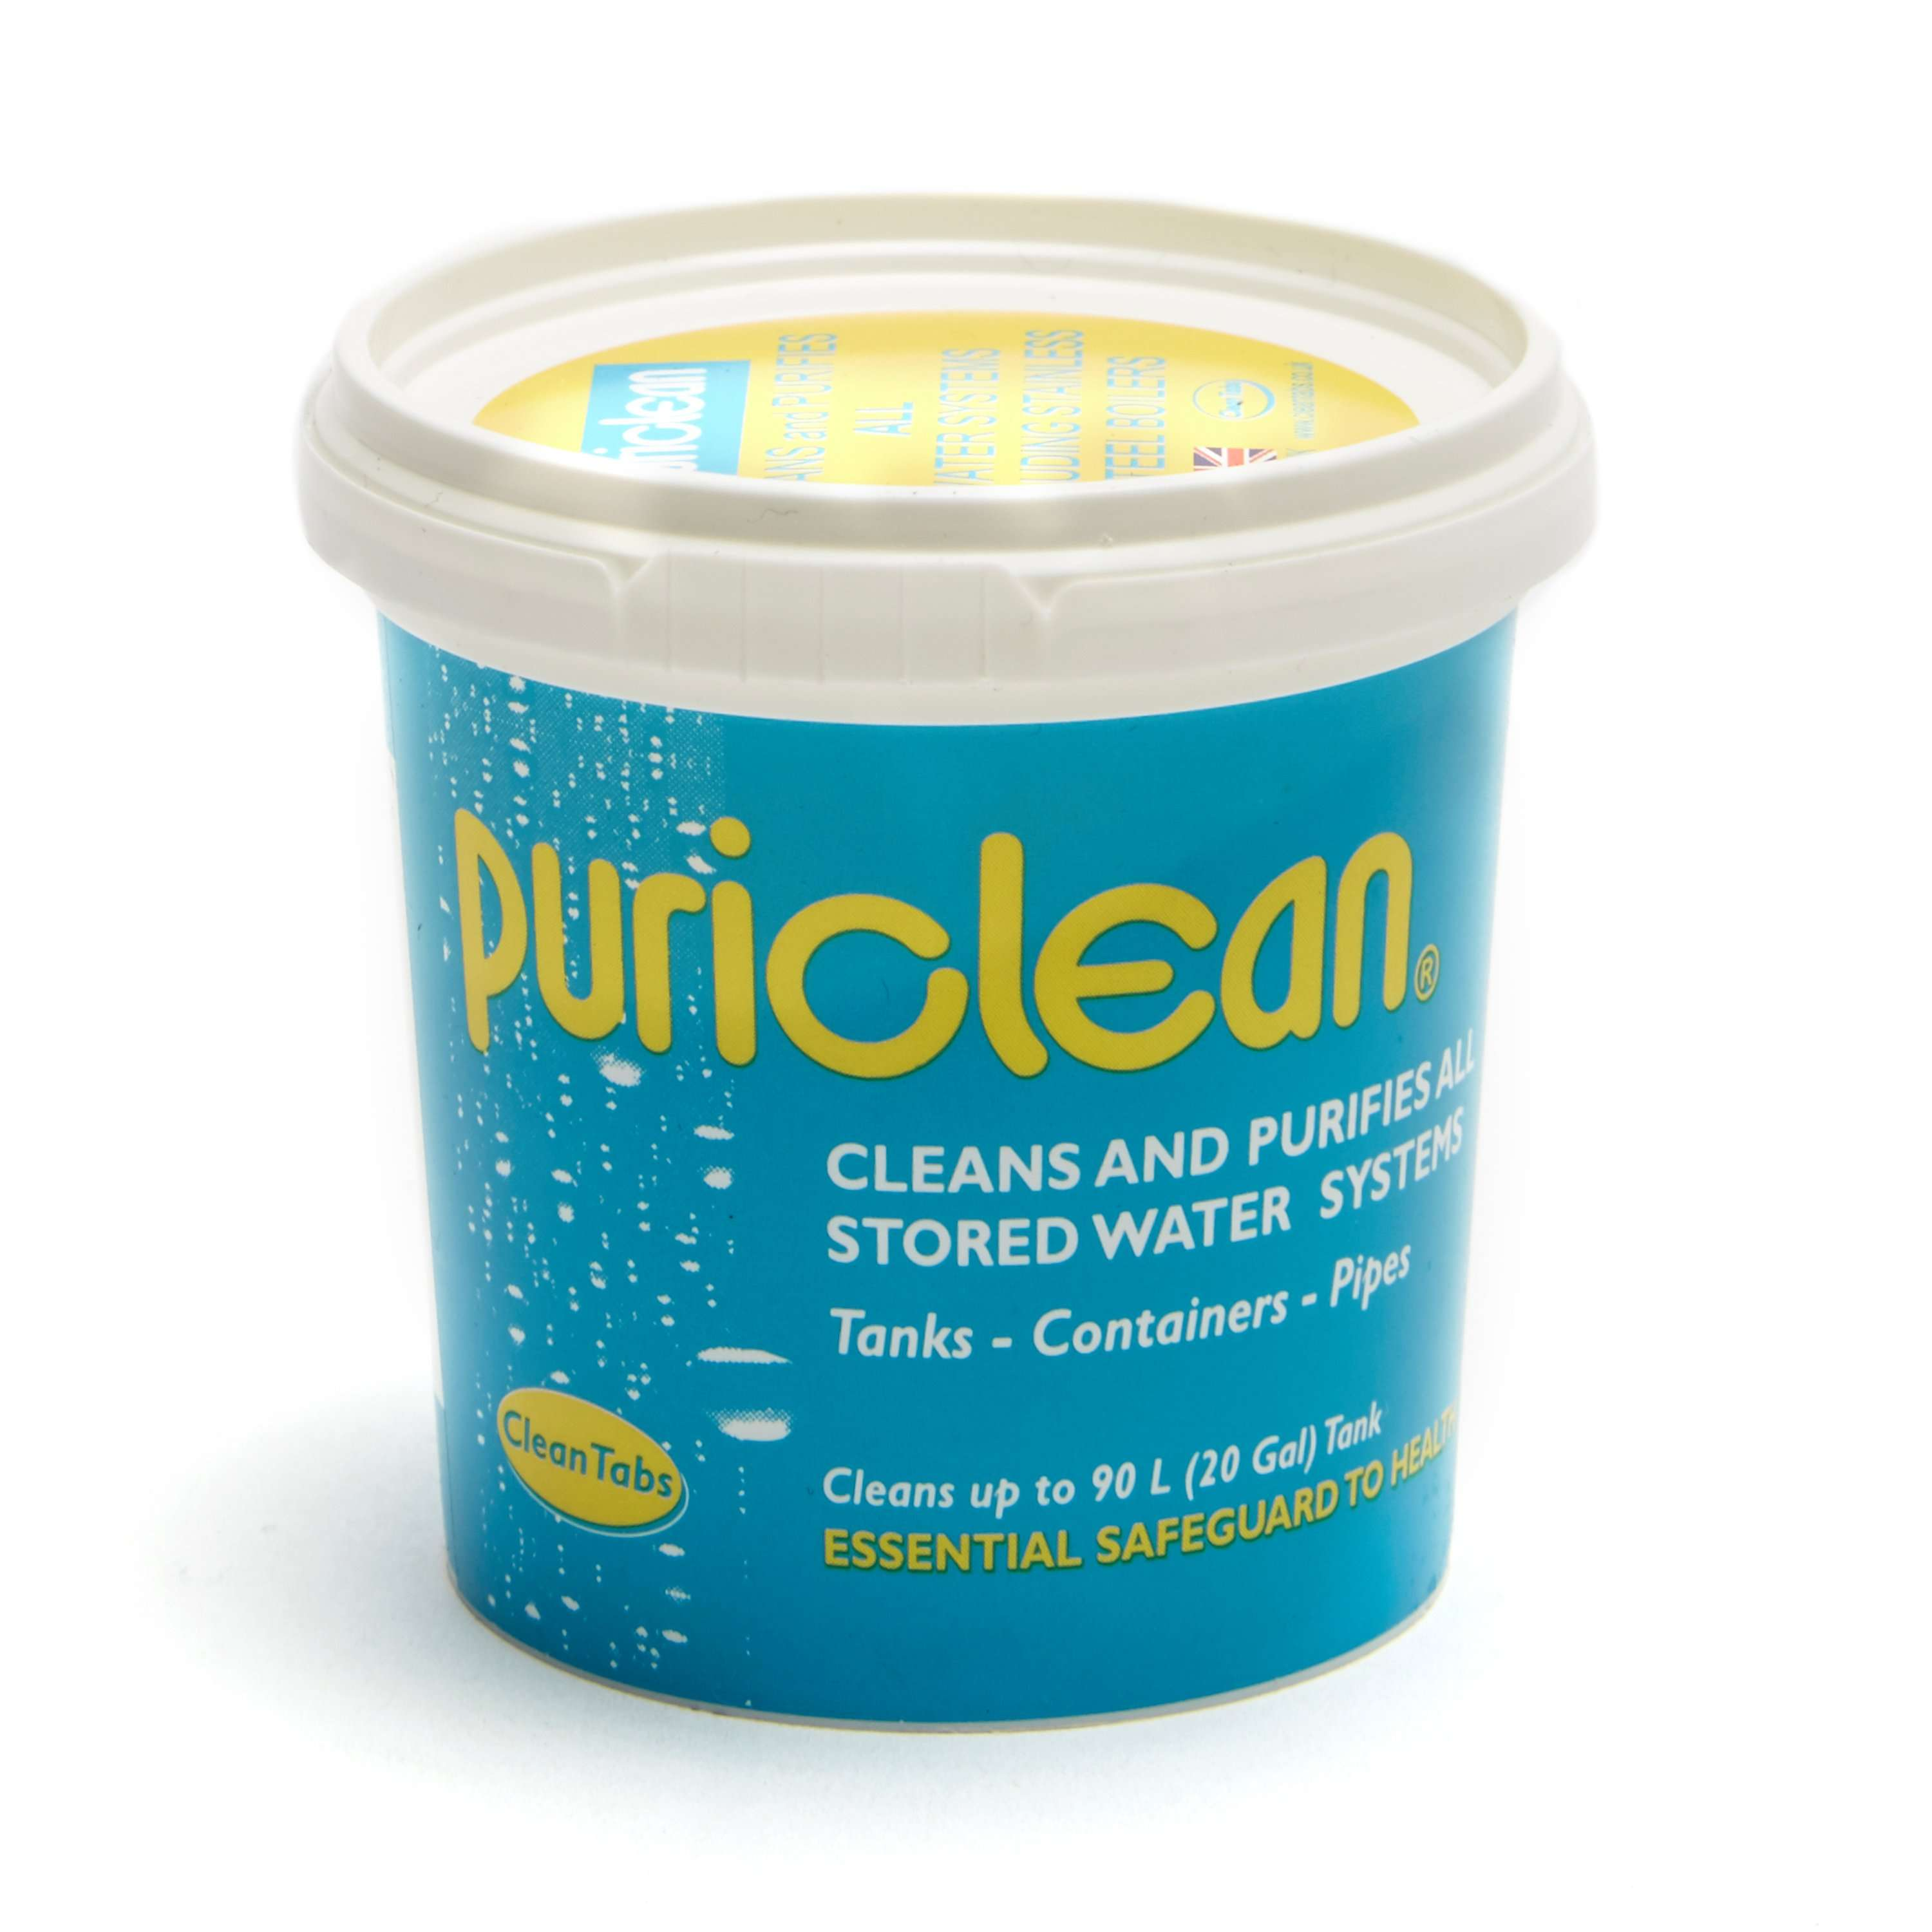 QUEST Puriclean 100g